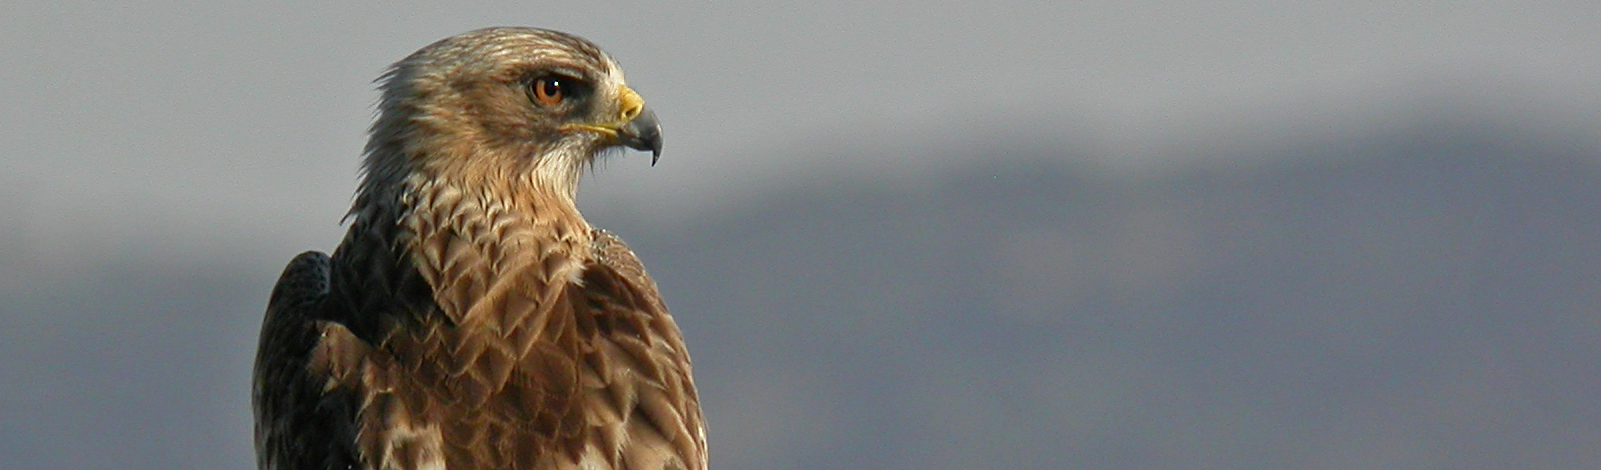 Booted eagle (Aquila pennata). BIRD OF THE MONTH. NOVEMBER